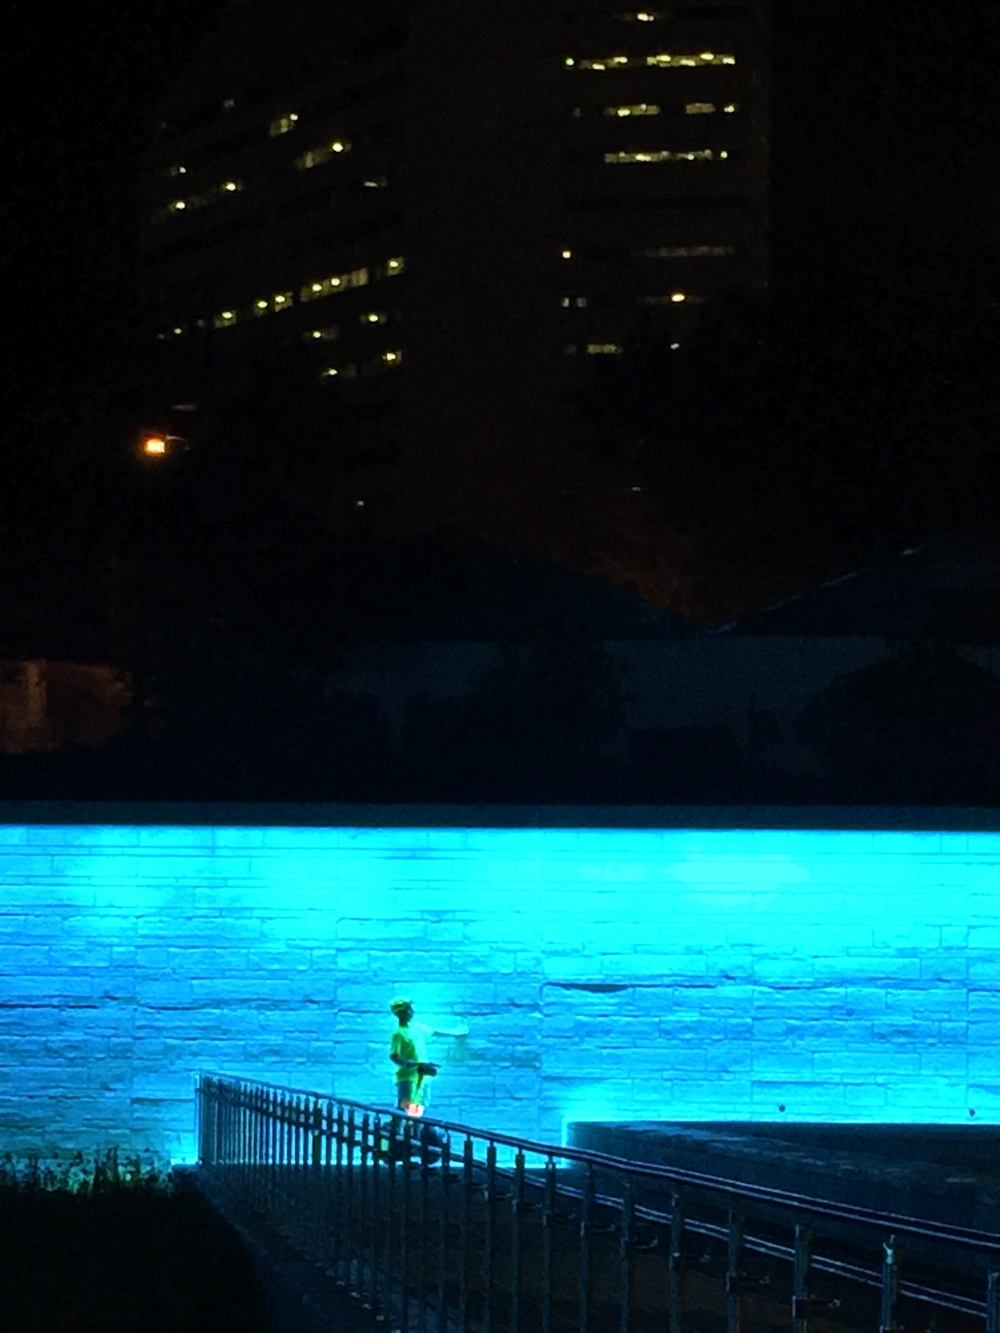 The Department of Education Building (DOE) appears to loom over Lake Anita at night.